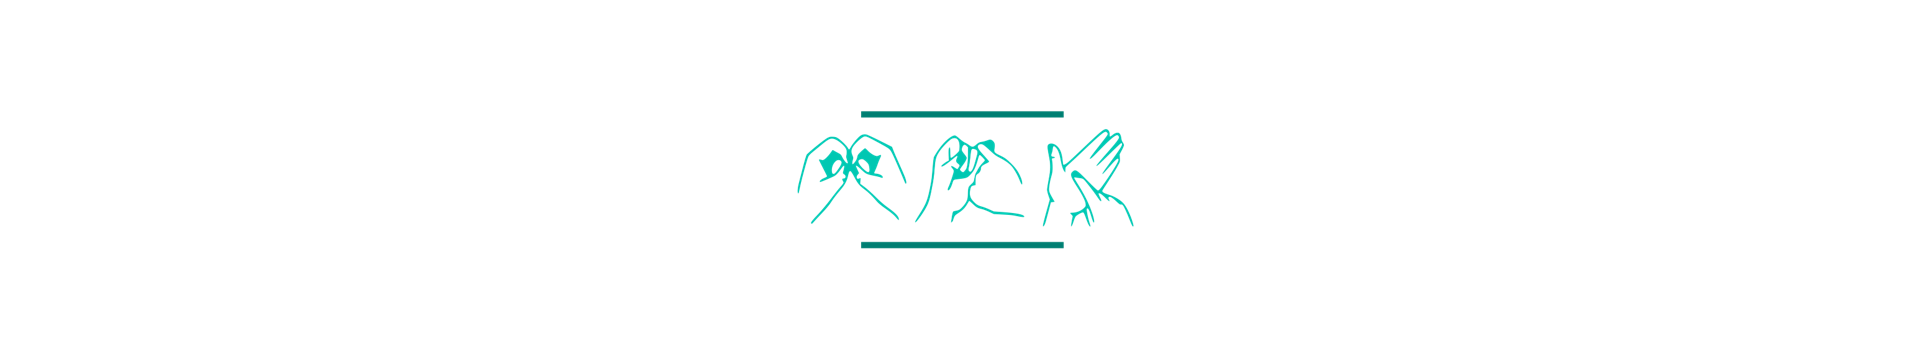 Image: three mint green hands signing the letters 'BSL', with a darker green line above and below the hands